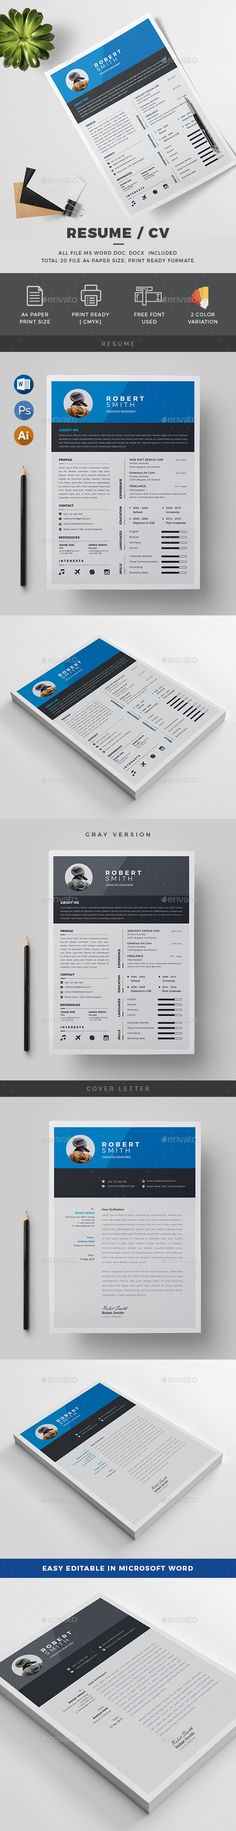 Resume Template #design Download http\/\/graphicrivernet\/item - where to find resume templates on word 2010